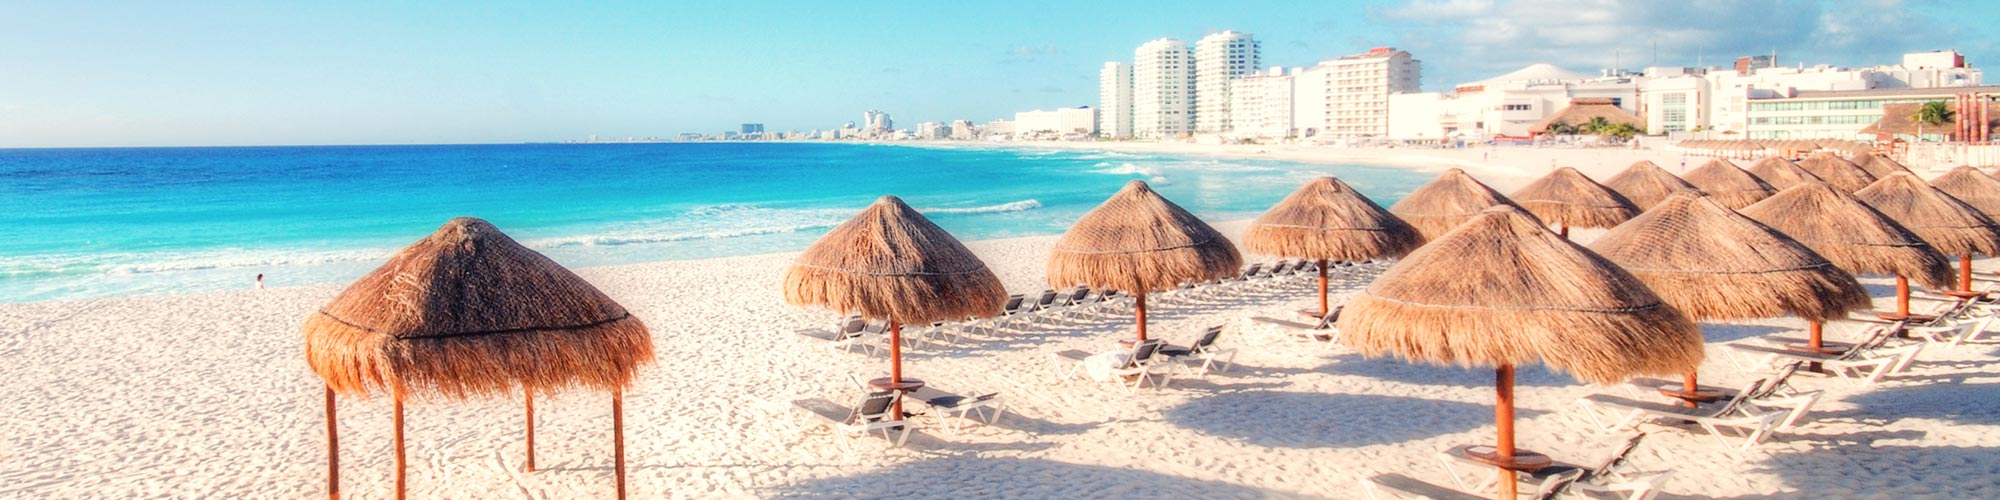 Flights from Victoria to Cancun